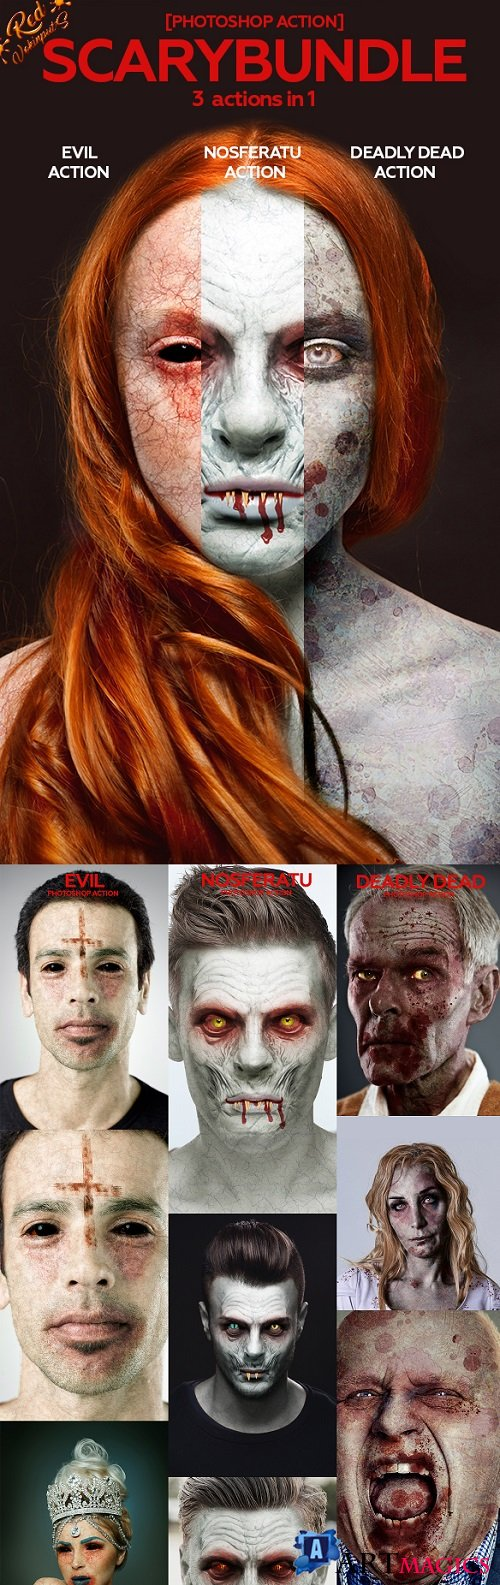 Scary Bundle Photoshop Action - 20953798